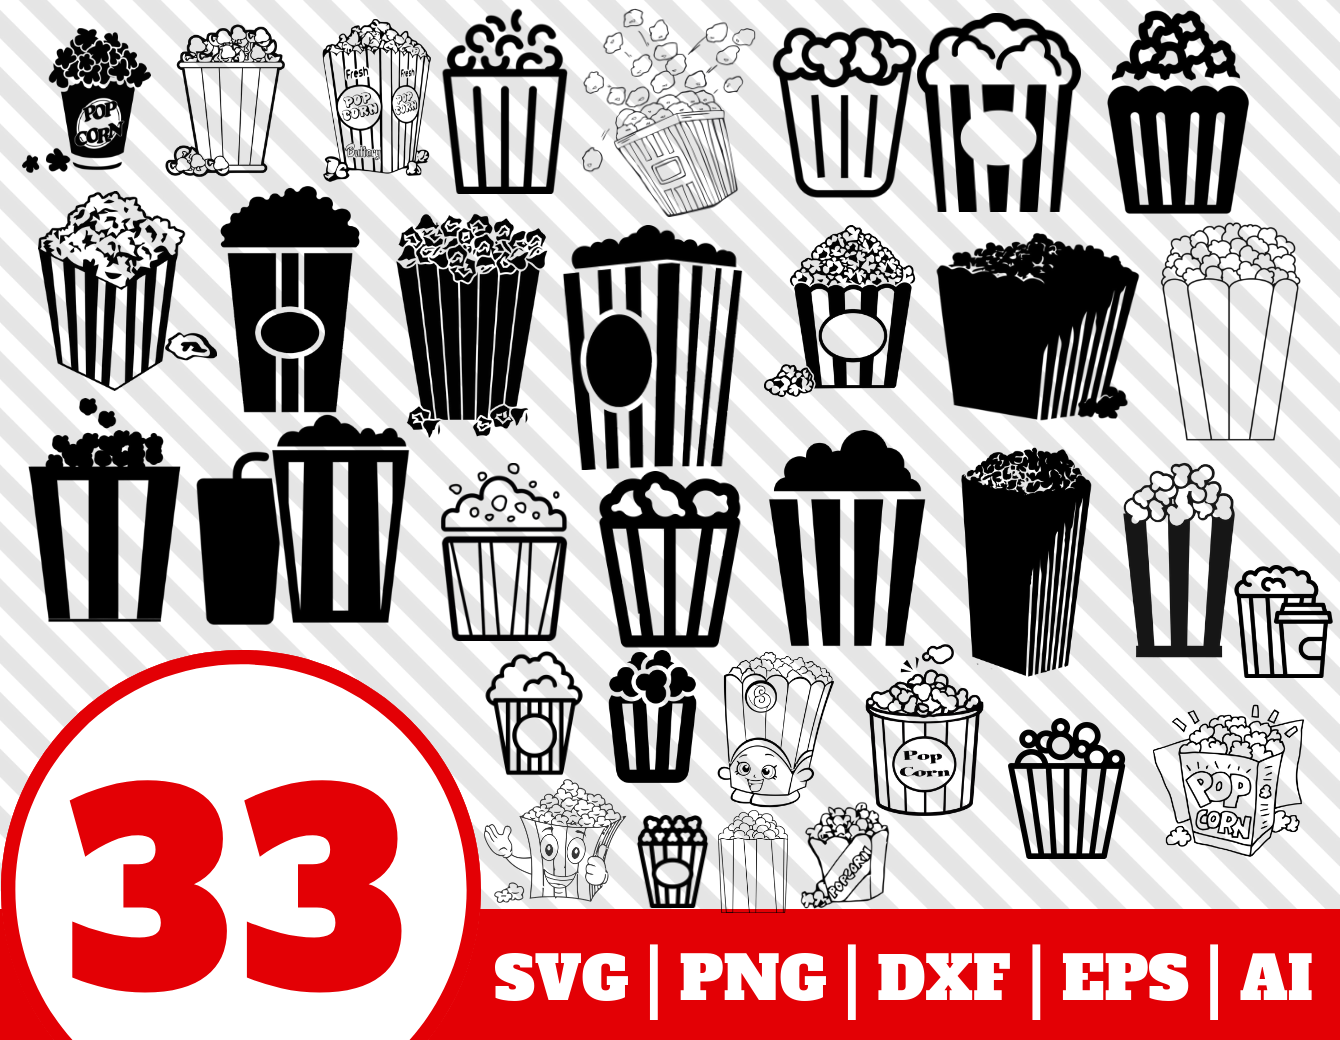 33 POPCORN SVG BUNDLE.